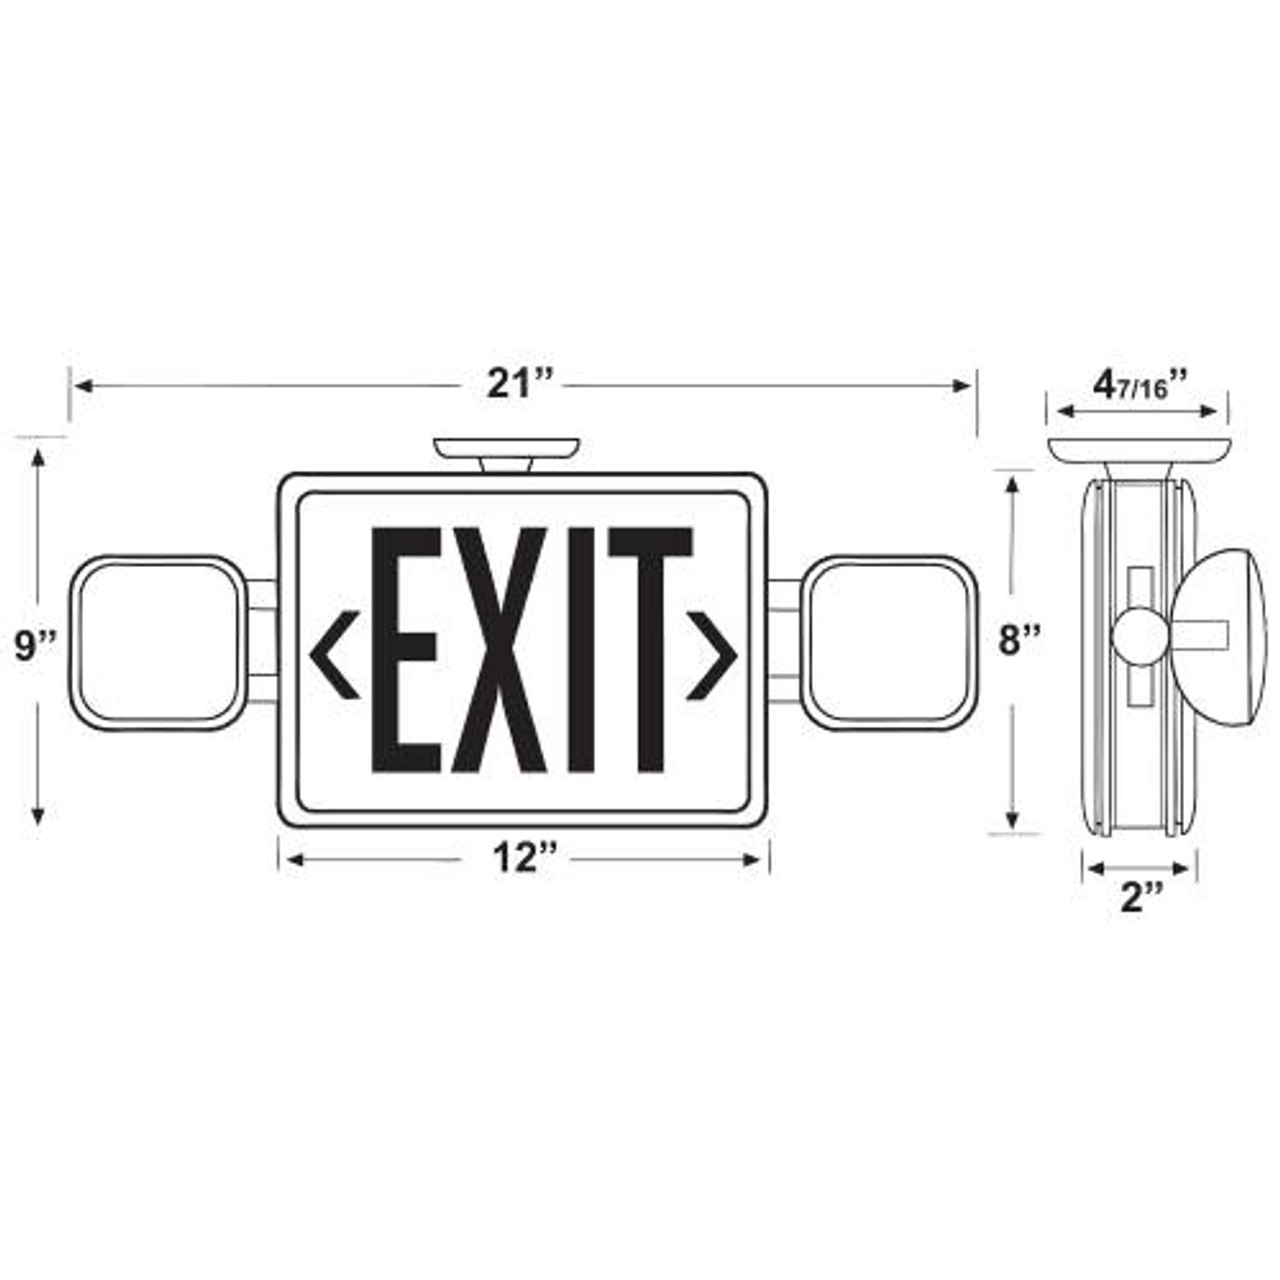 Combo LED Exit/Emergency Light Dimensions